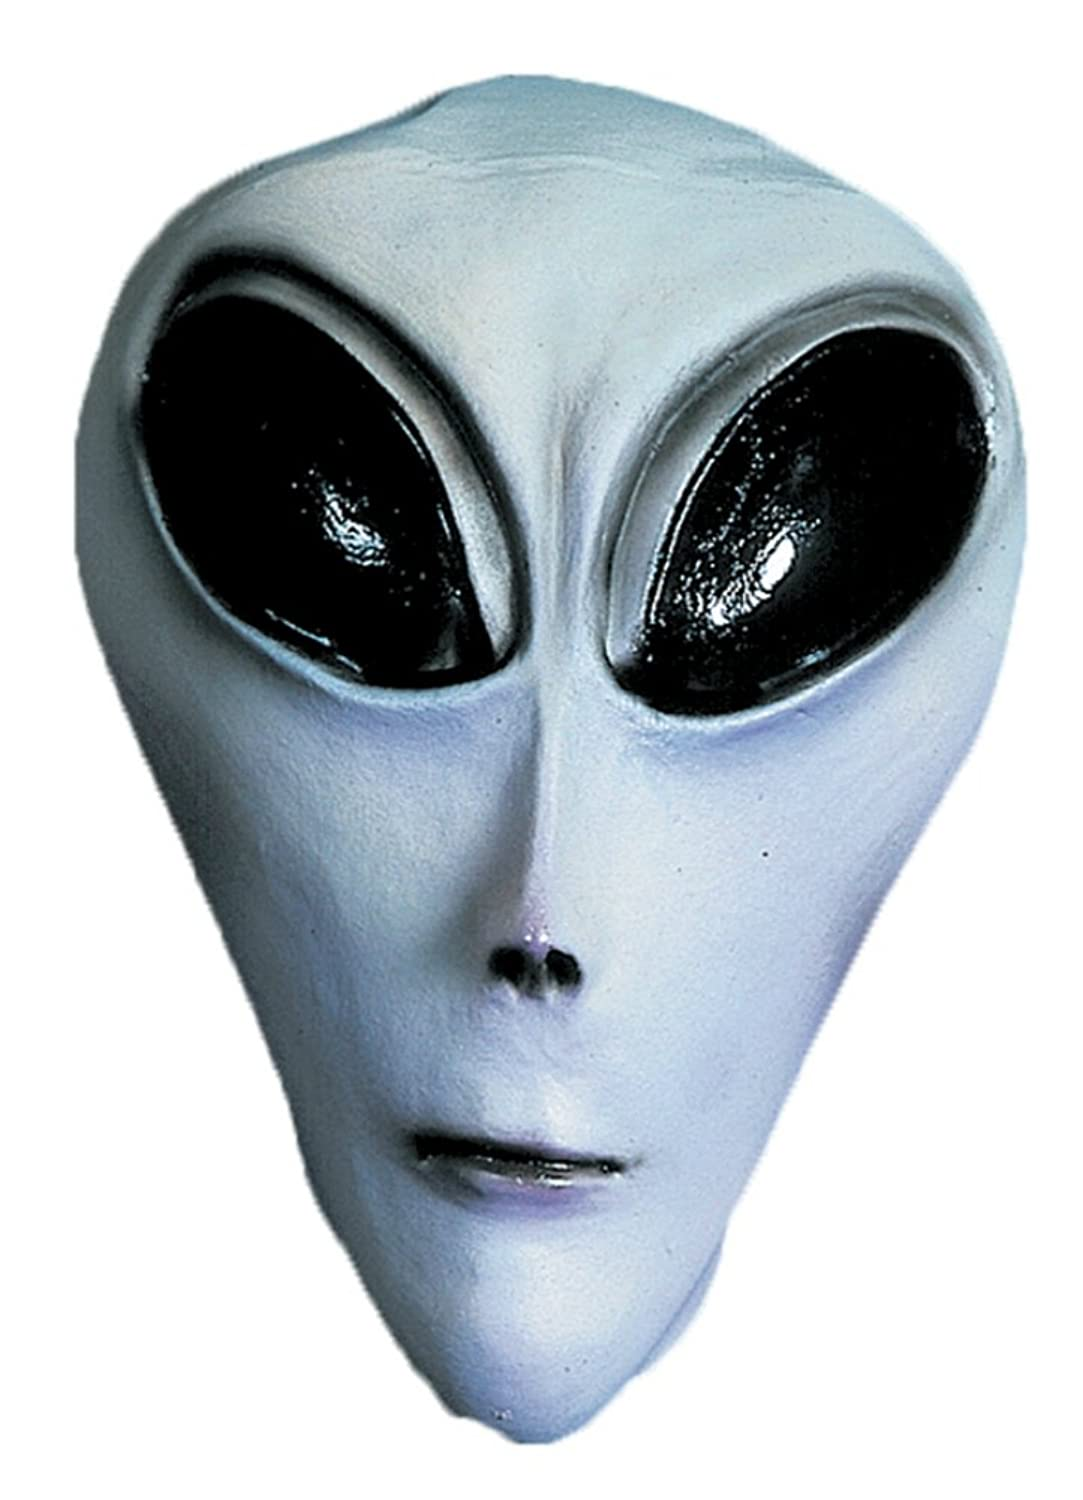 Amazon.com Ufo Grey Alien Roswell Area 51 Adult Halloween Costume Mask Clothing  sc 1 st  Amazon.com & Amazon.com: Ufo Grey Alien Roswell Area 51 Adult Halloween Costume ...